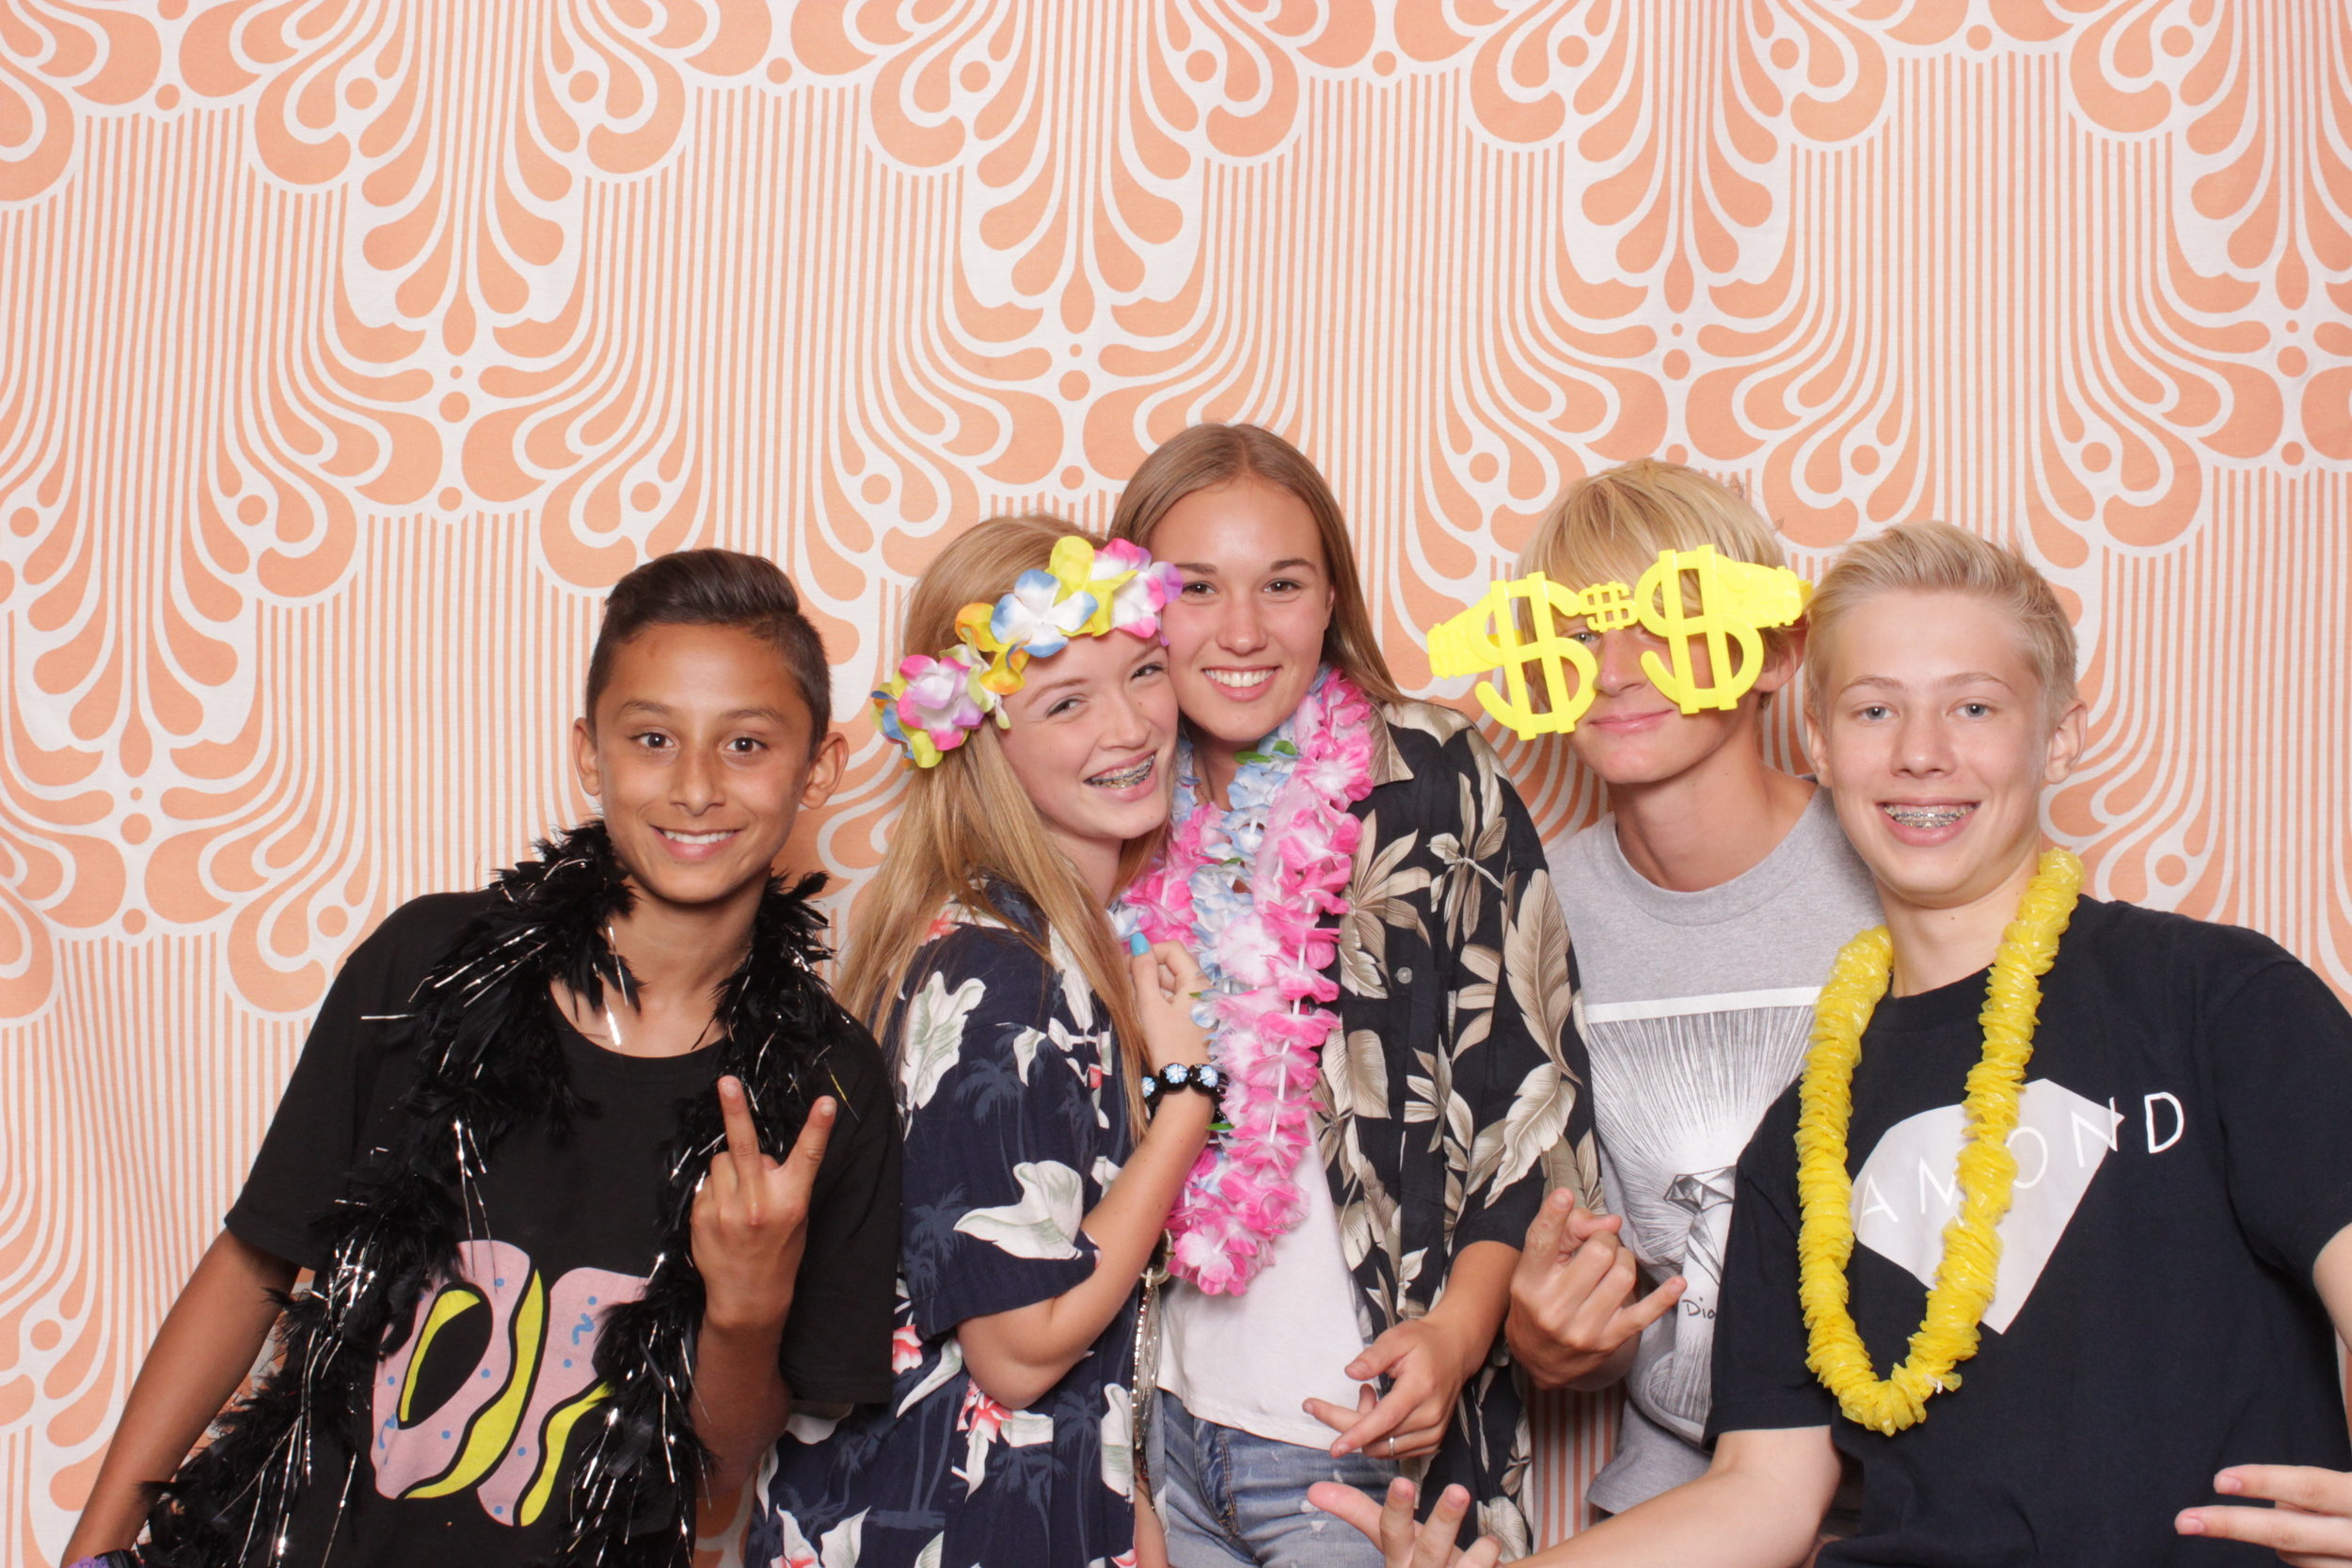 Infinite-hawaiian-luau-party-photo-booth-rental-chico-freshman